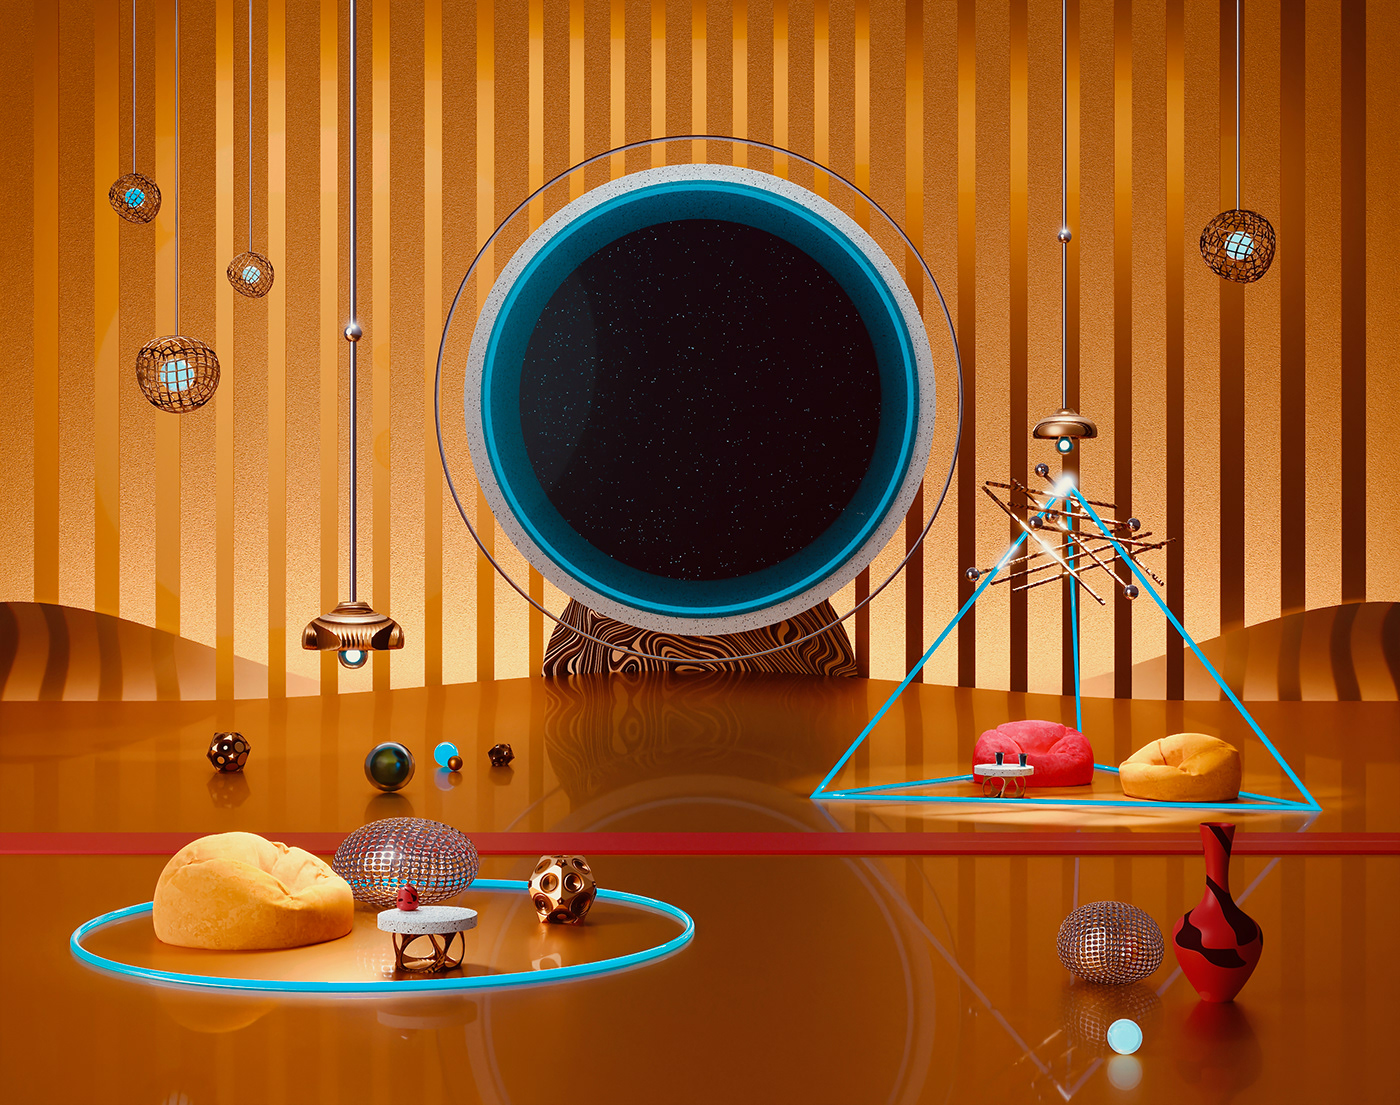 3D blender CGI rendering 3D illustration abstract design cycles